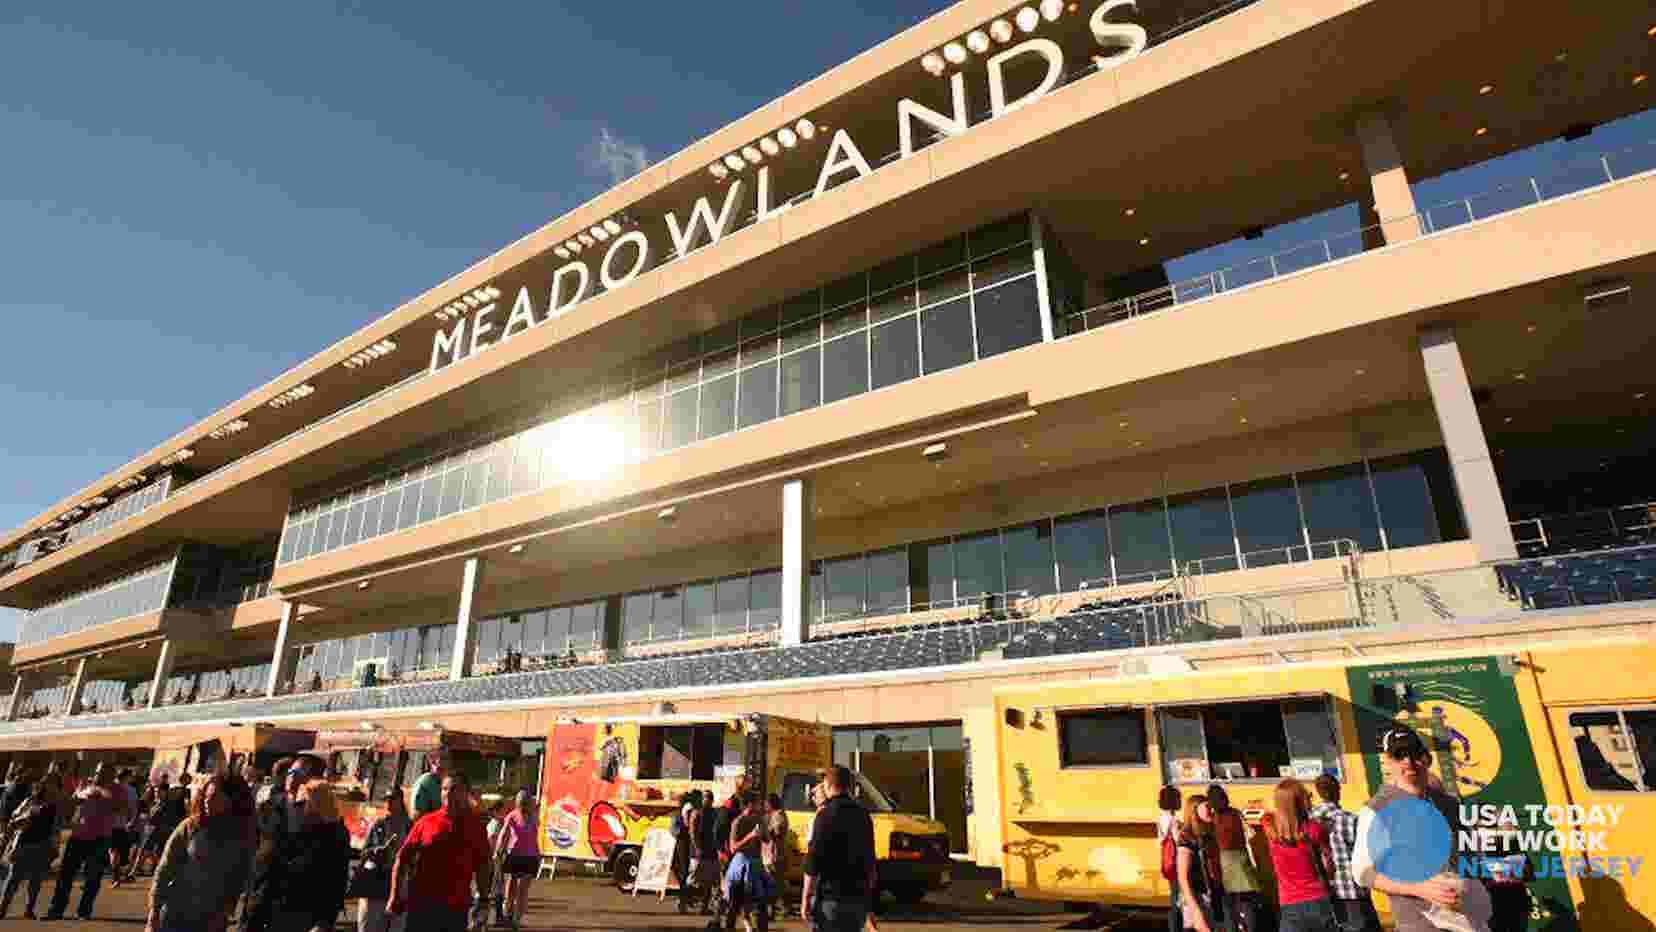 Lawsuit seeks OK for sports betting at former Cherry Hill racetrack